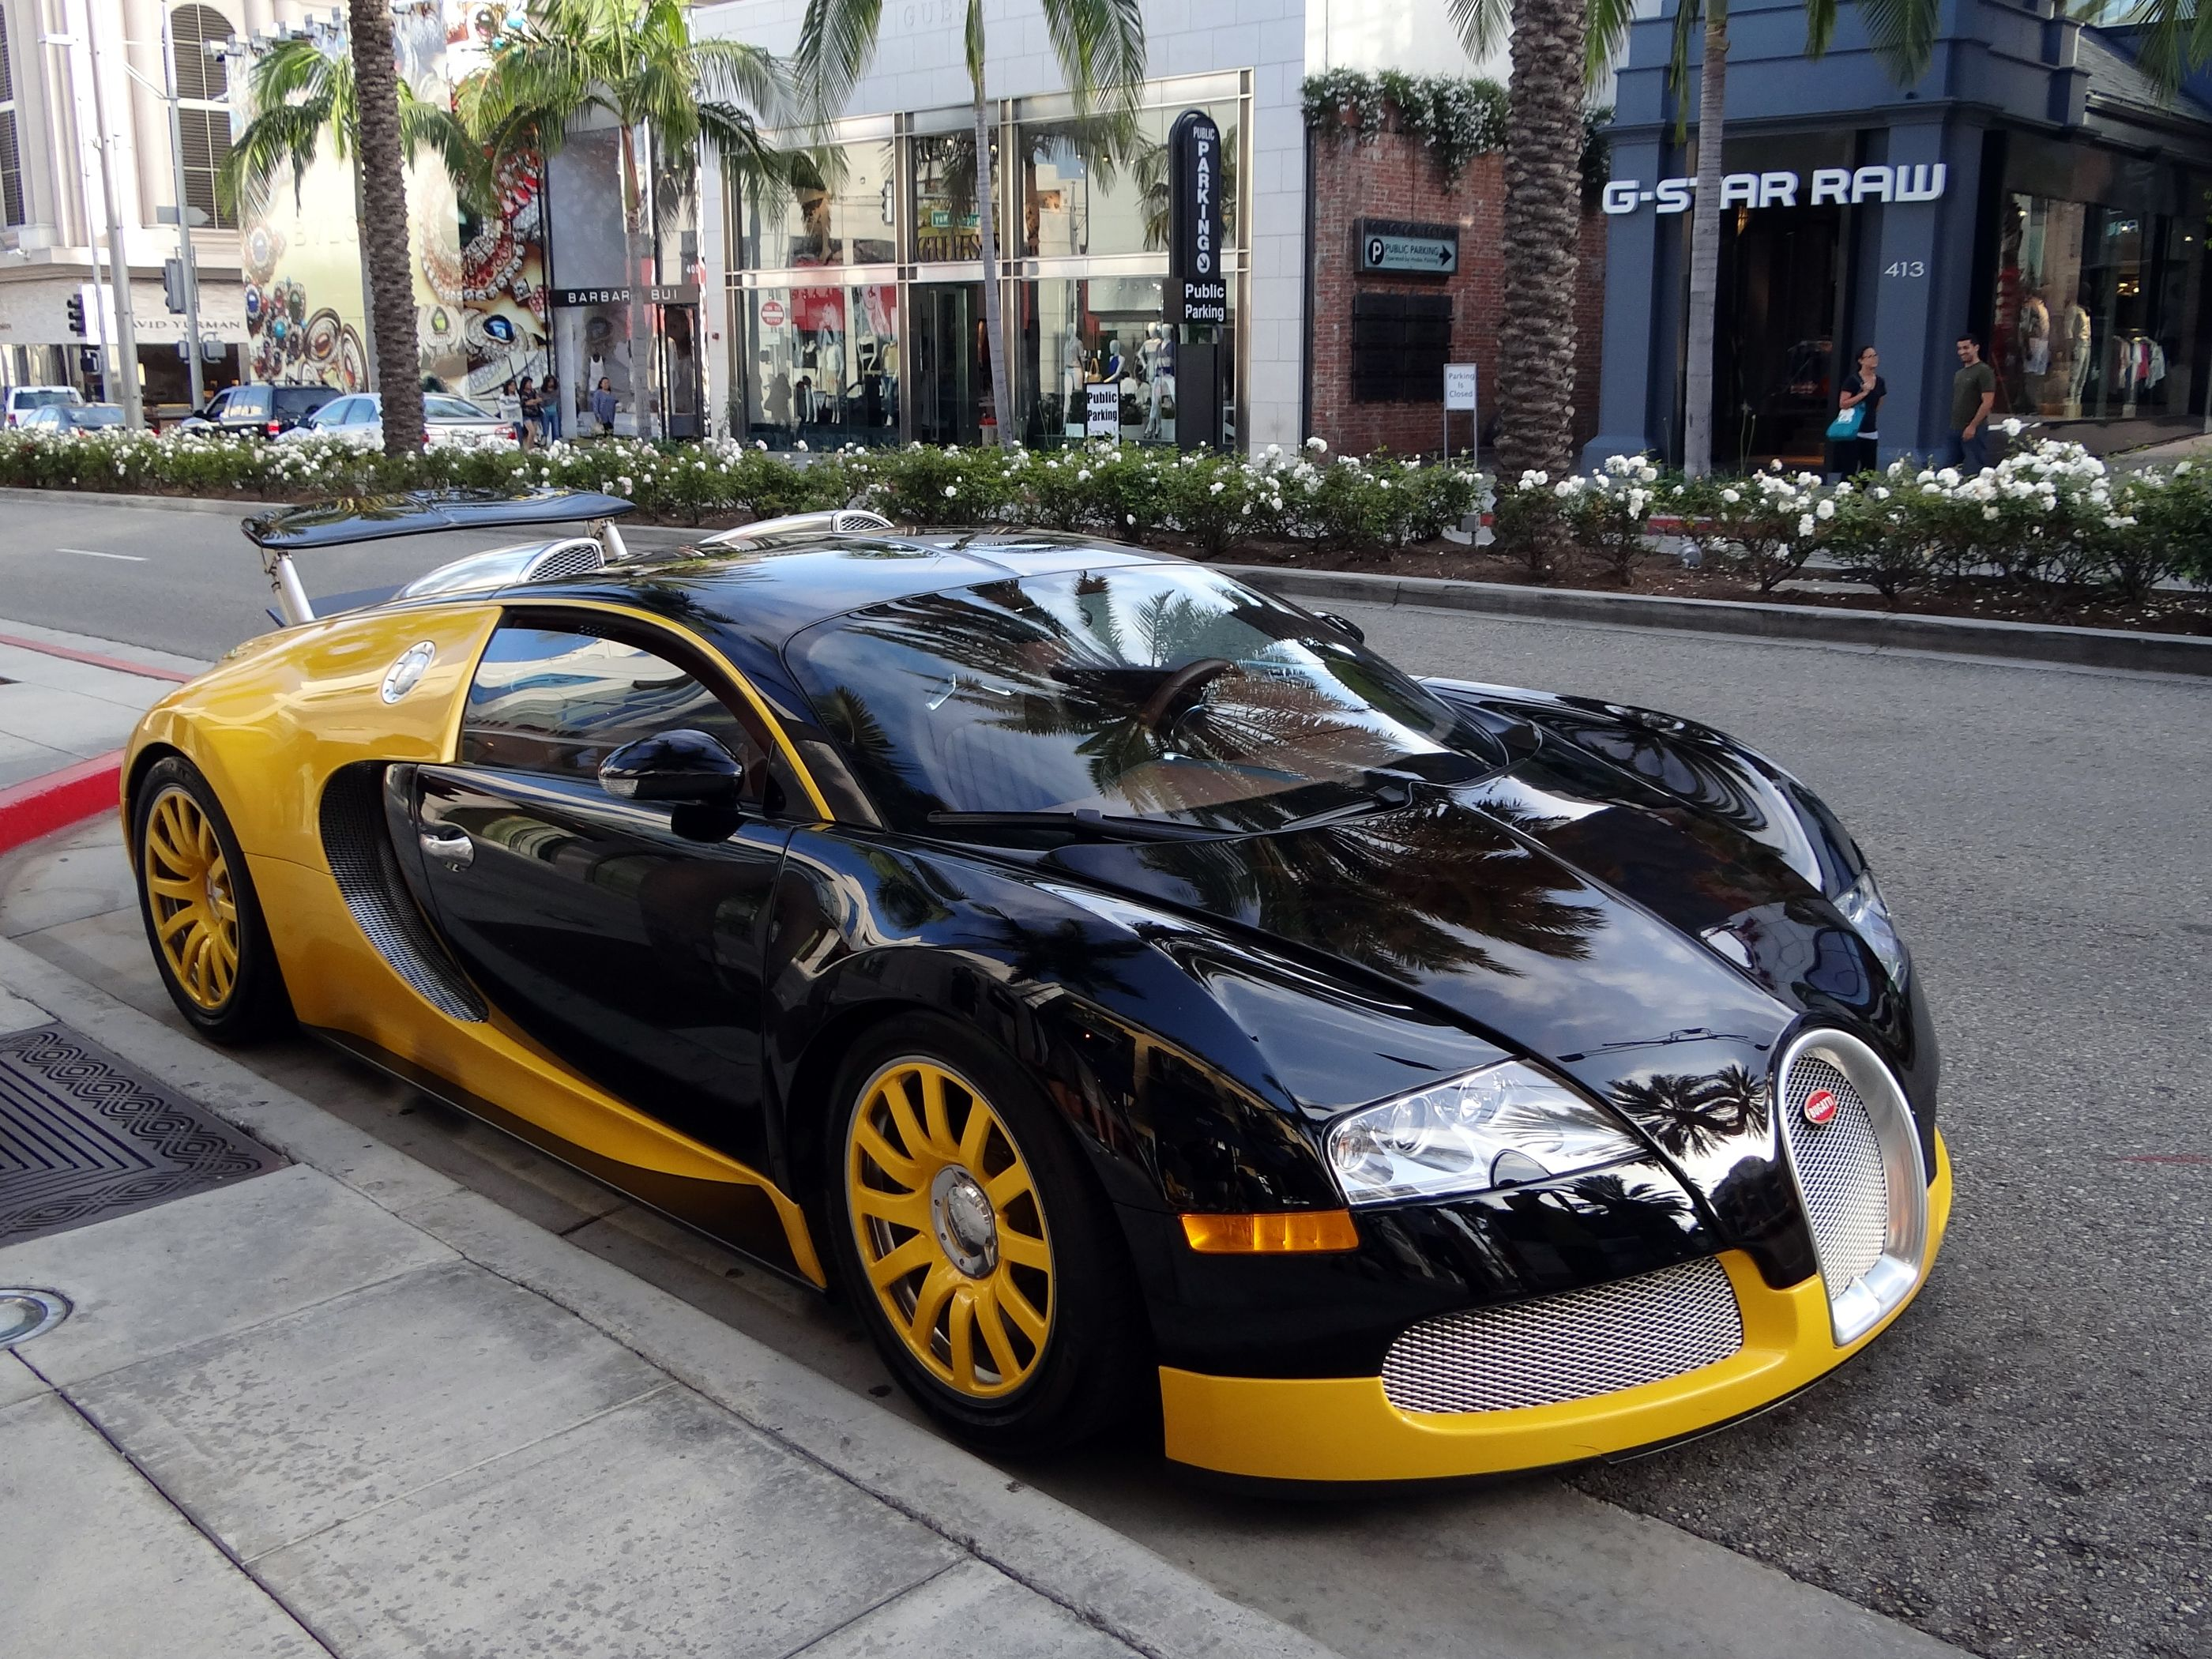 016c032fdcd5884f00a85ea276224d64 Exciting Bugatti Veyron Zero to Sixty Cars Trend